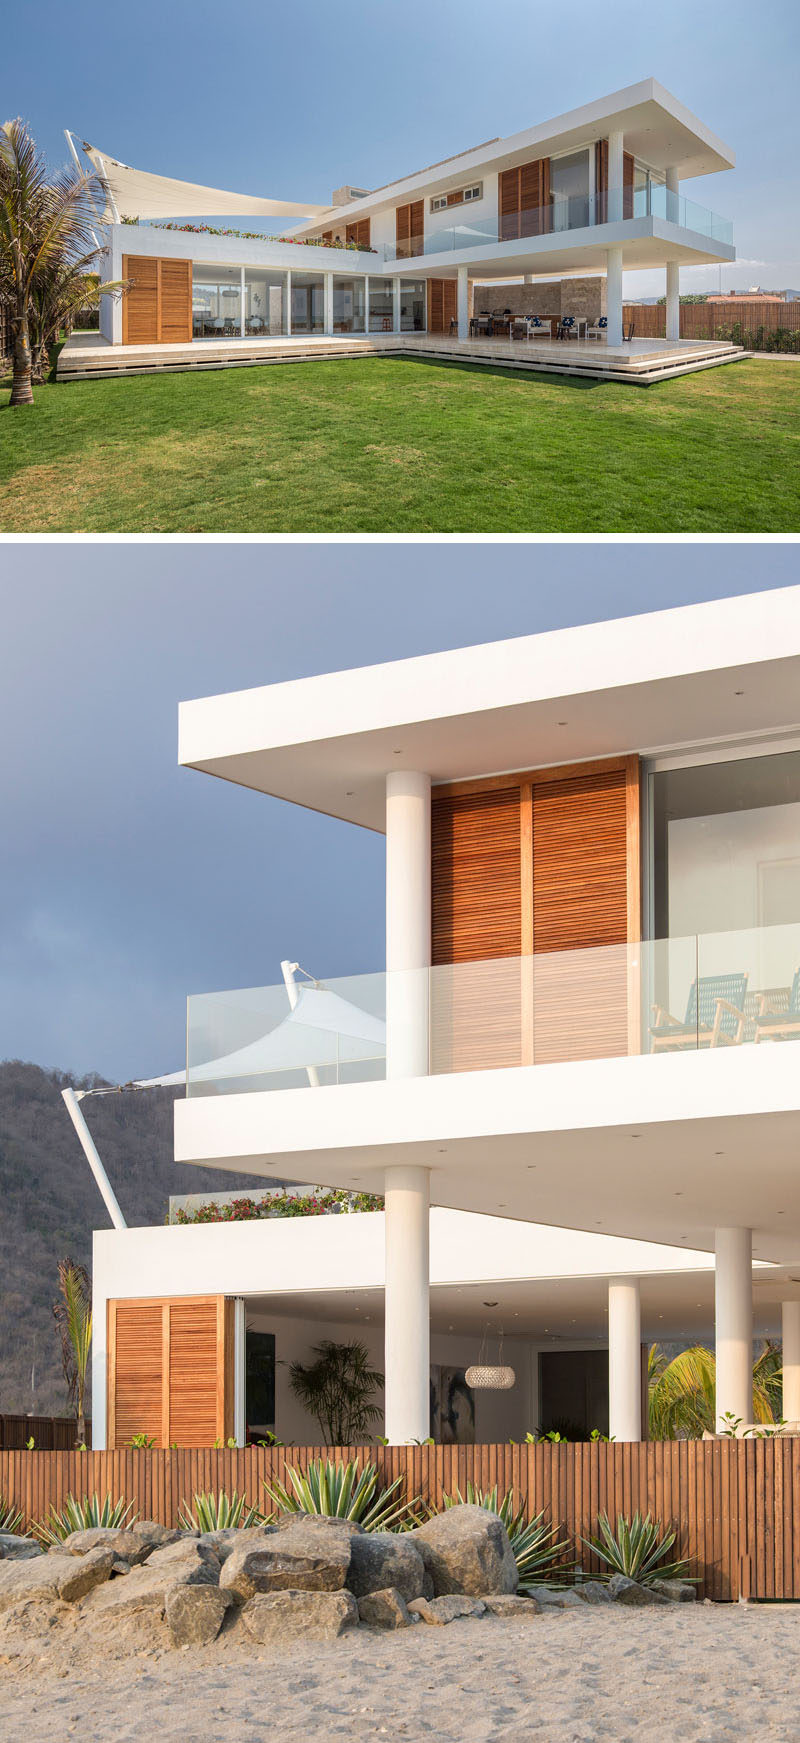 The placement of this modern beach house house allows it to have a large lawn and direct access to the beach.